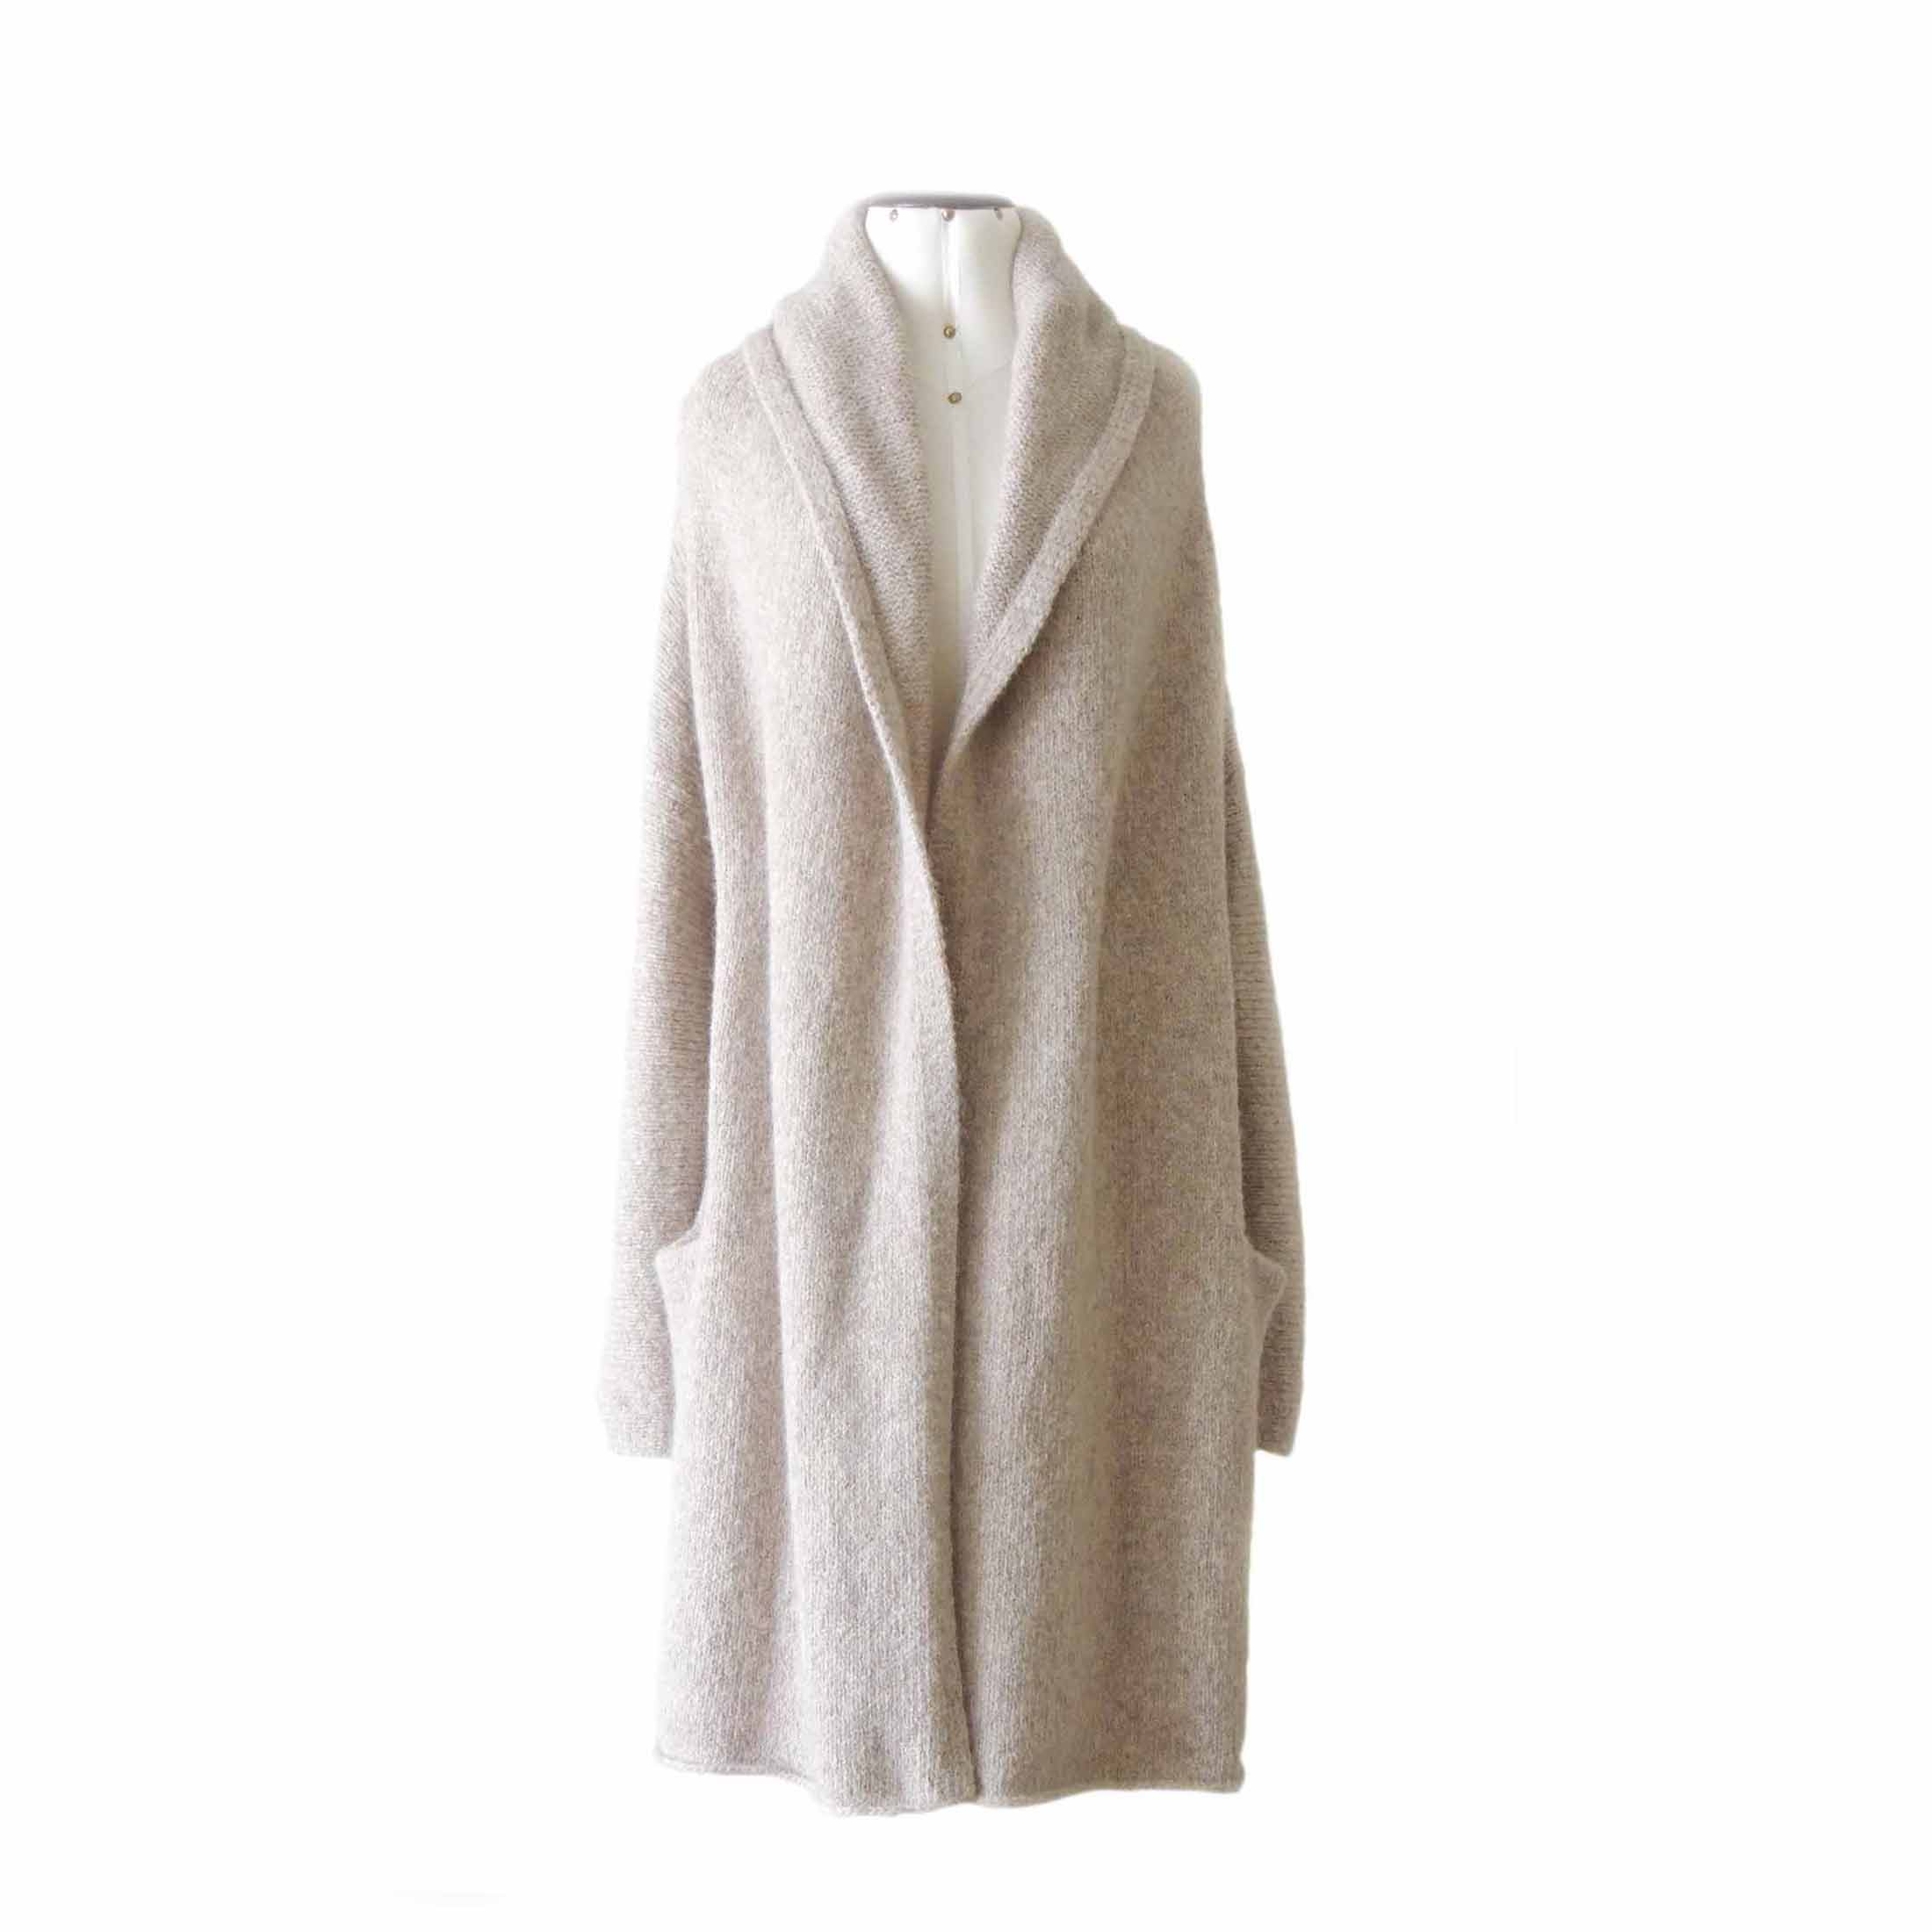 Wholesale: Capote coat, casual oversized cardigan felted alpaca blend